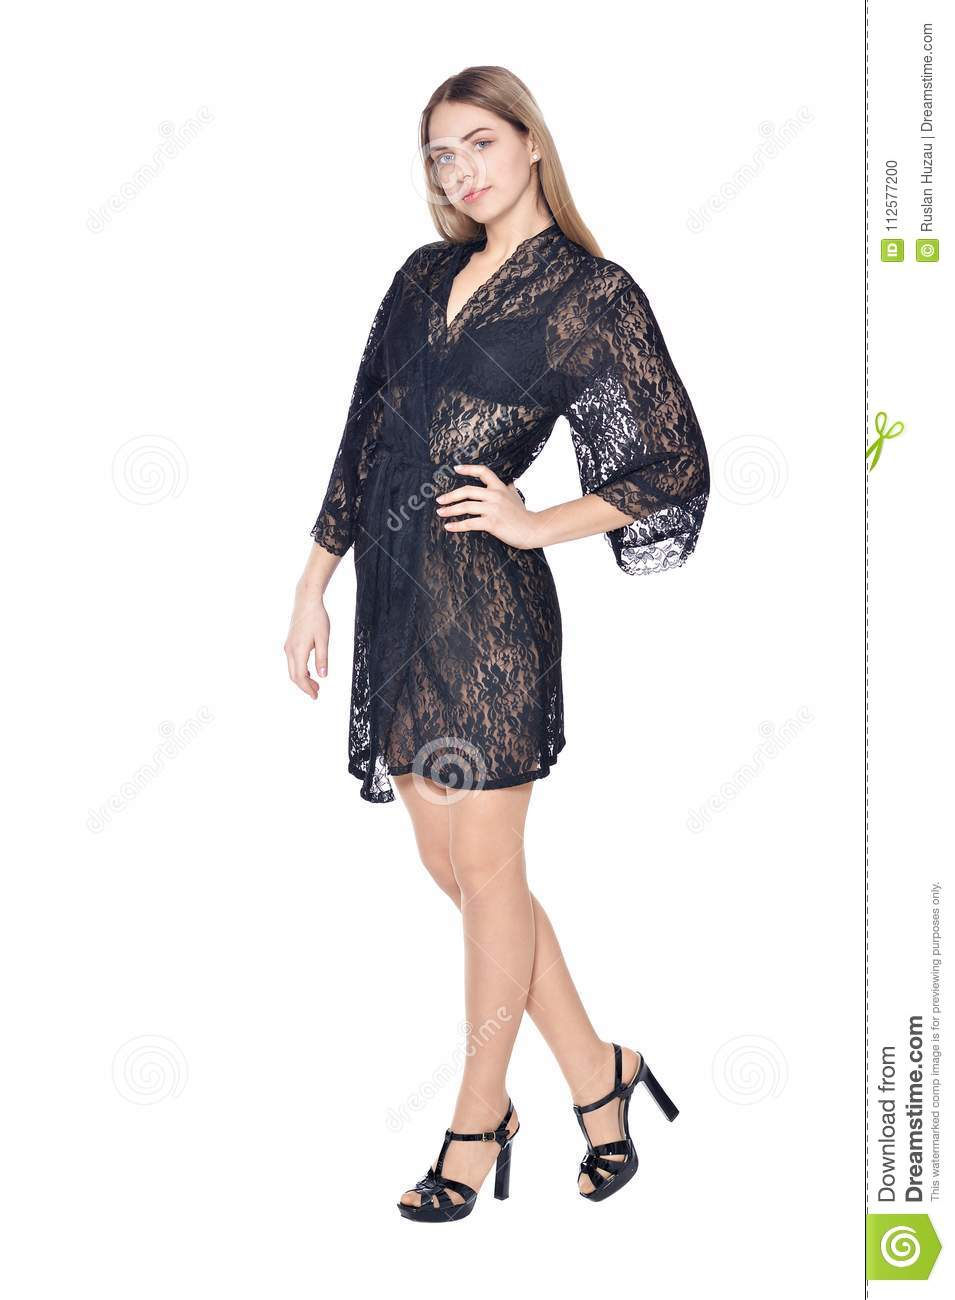 ecc51bc313c Portrait of beautiful woman in dark lace dressing gown posing isolated on white  background